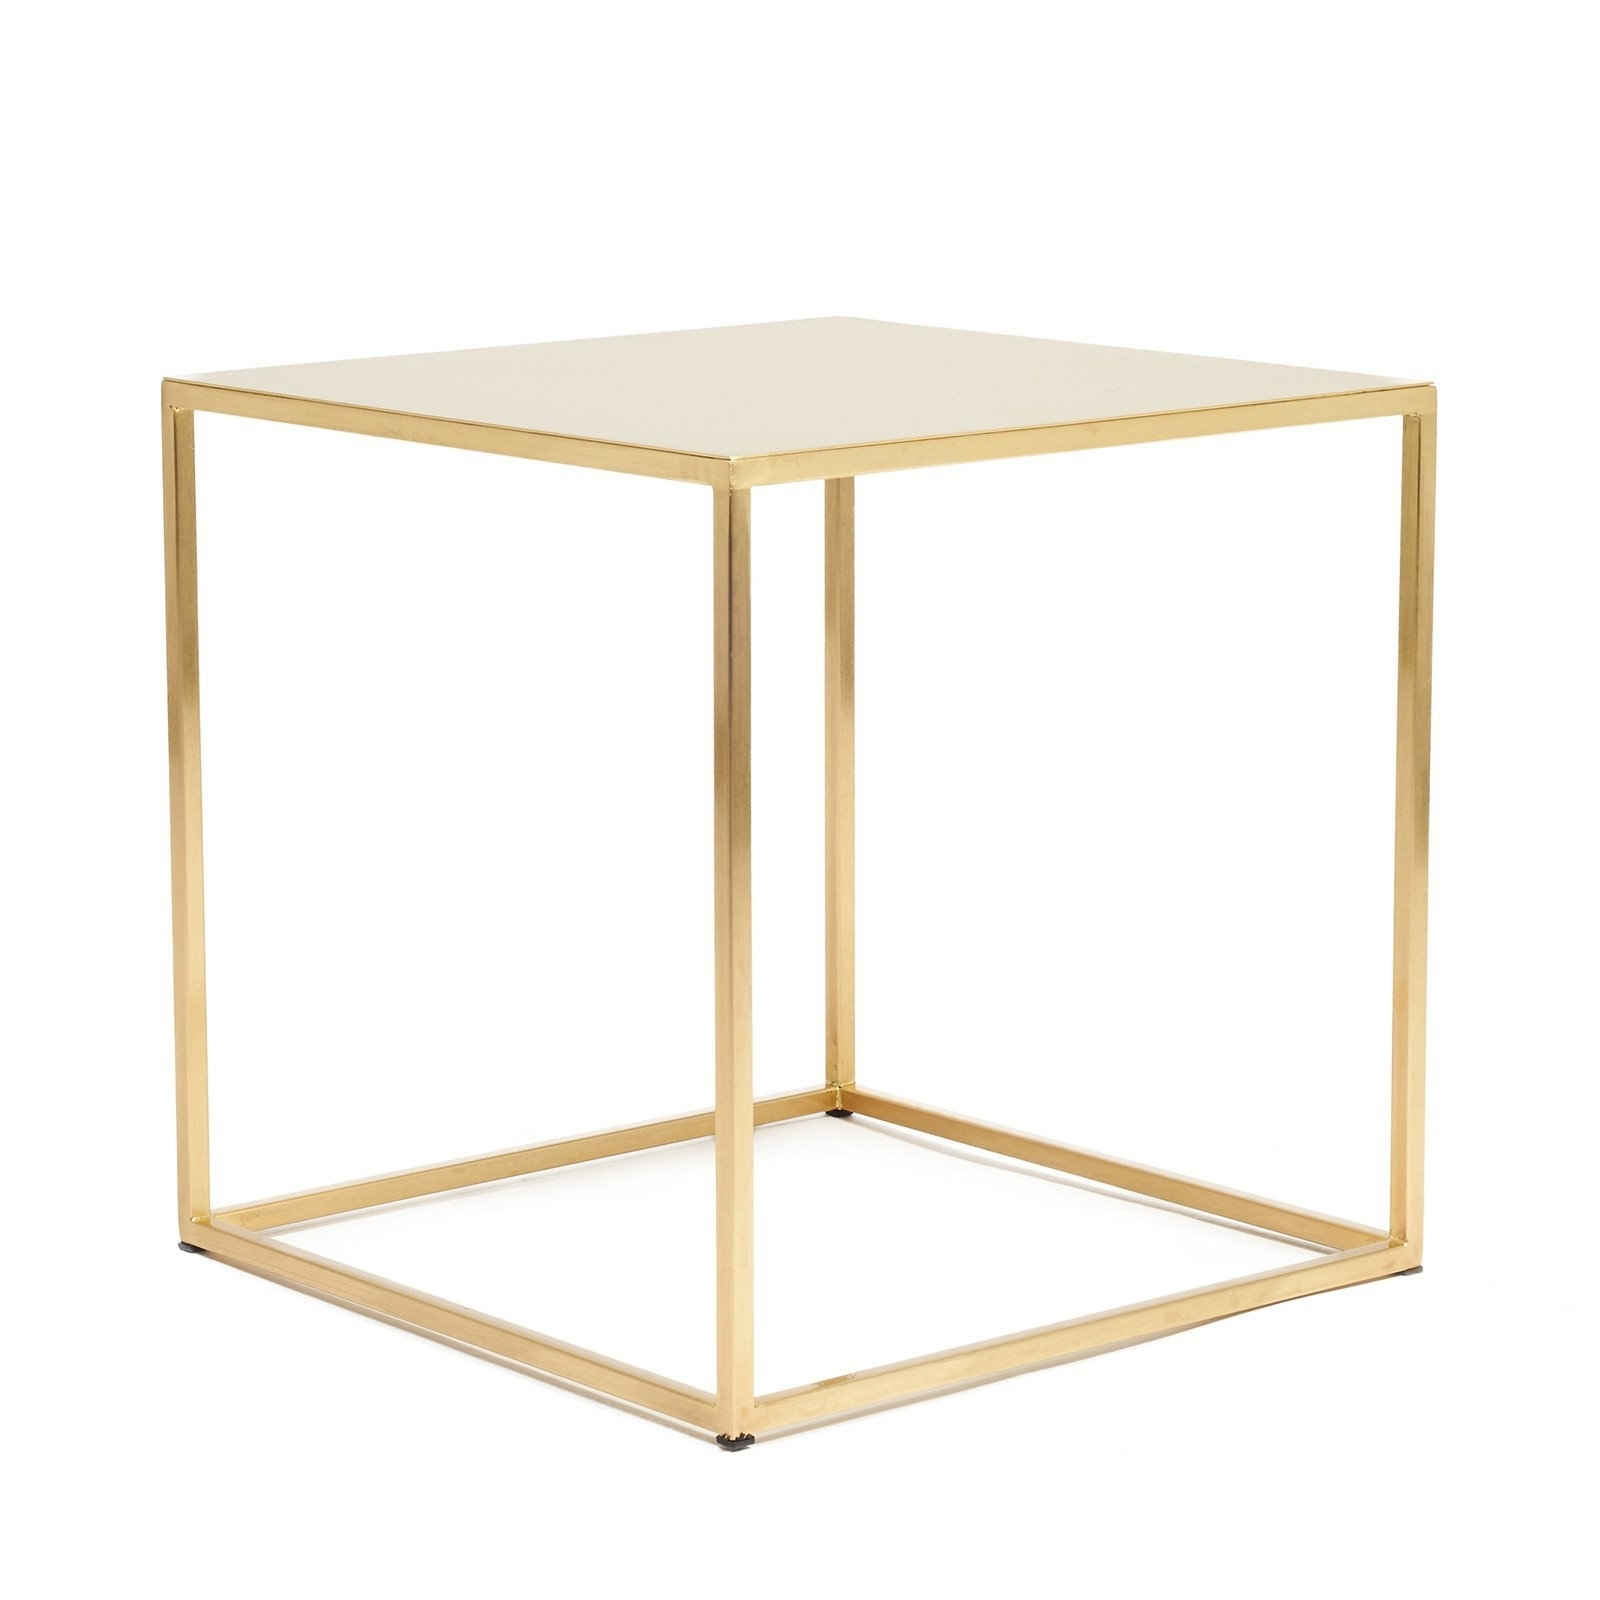 Satin With Regard To Most Recent Brass Iron Cube Tables (View 8 of 20)